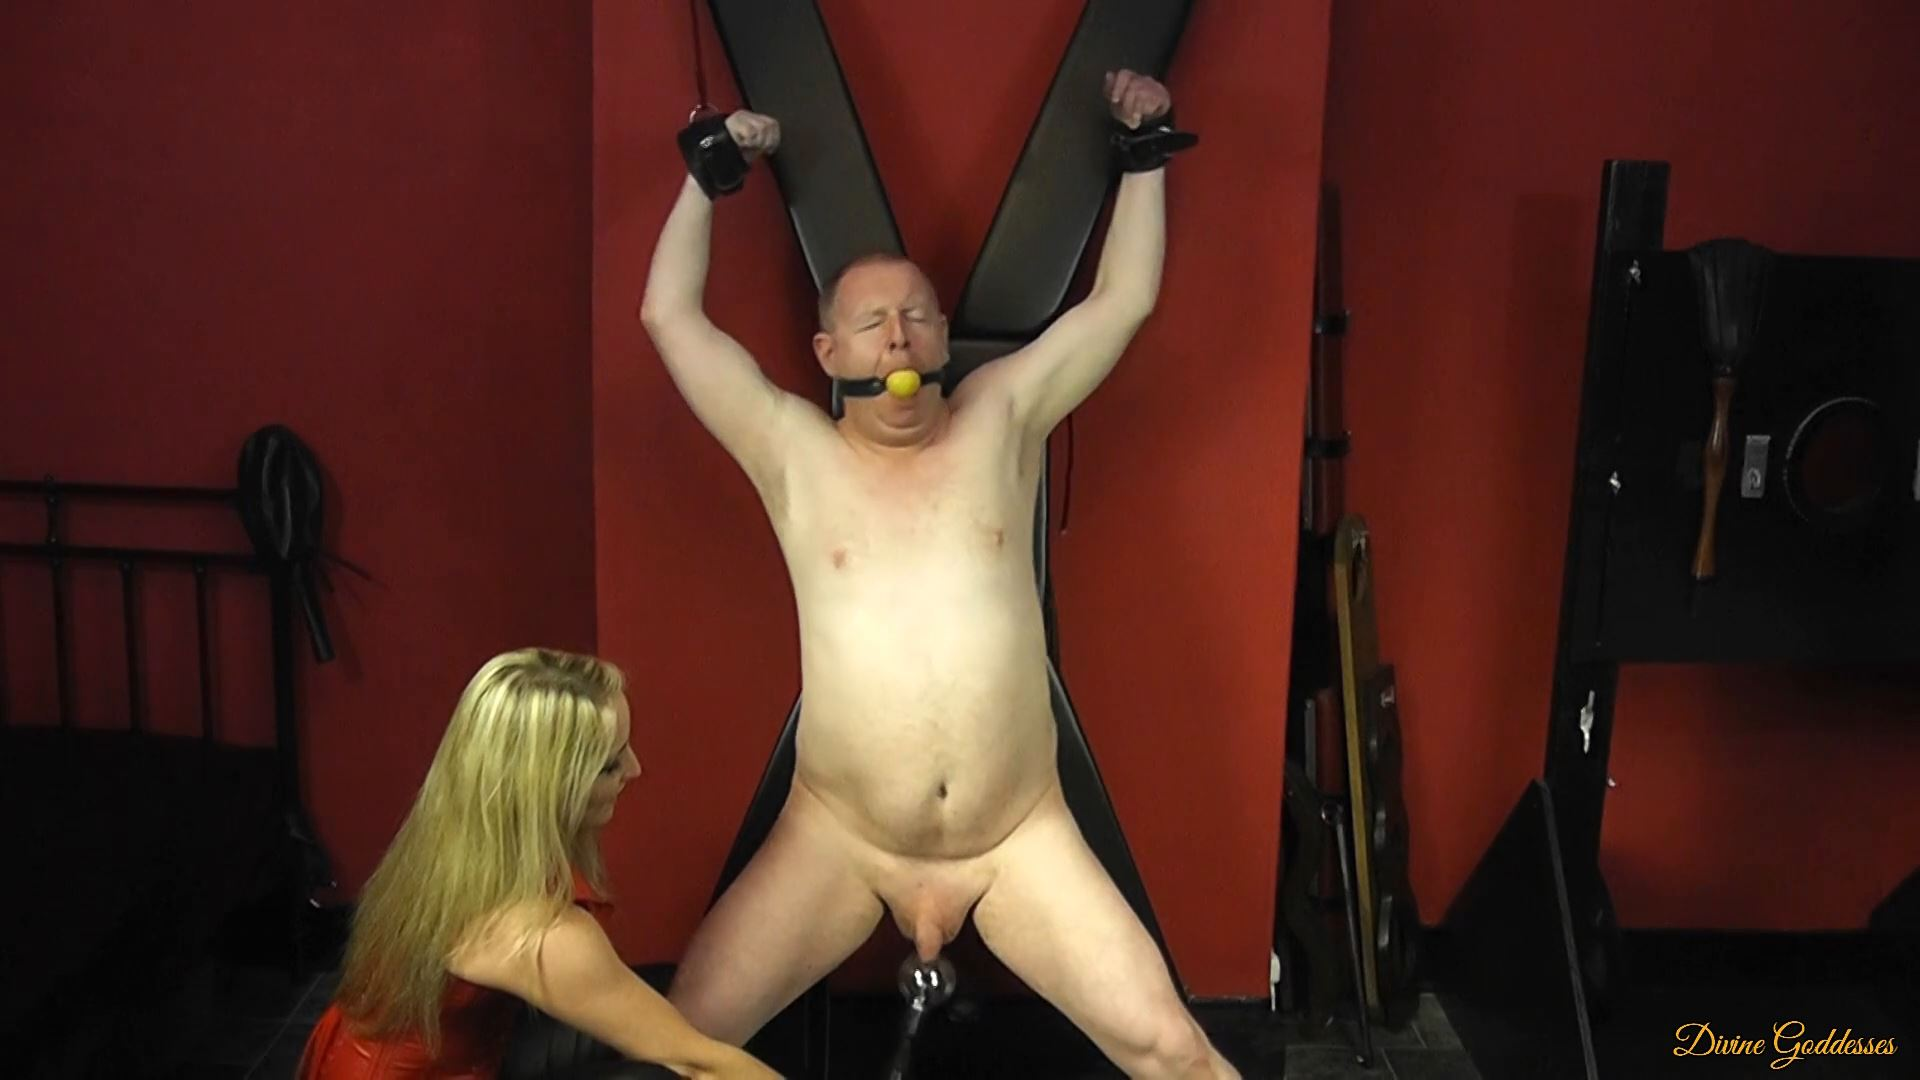 MISTRESS COURTNEY In Scene: SUBBY RESTRAINED AND SHOCKED - DIVINEGODDESSES - FULL HD/1080p/MP4